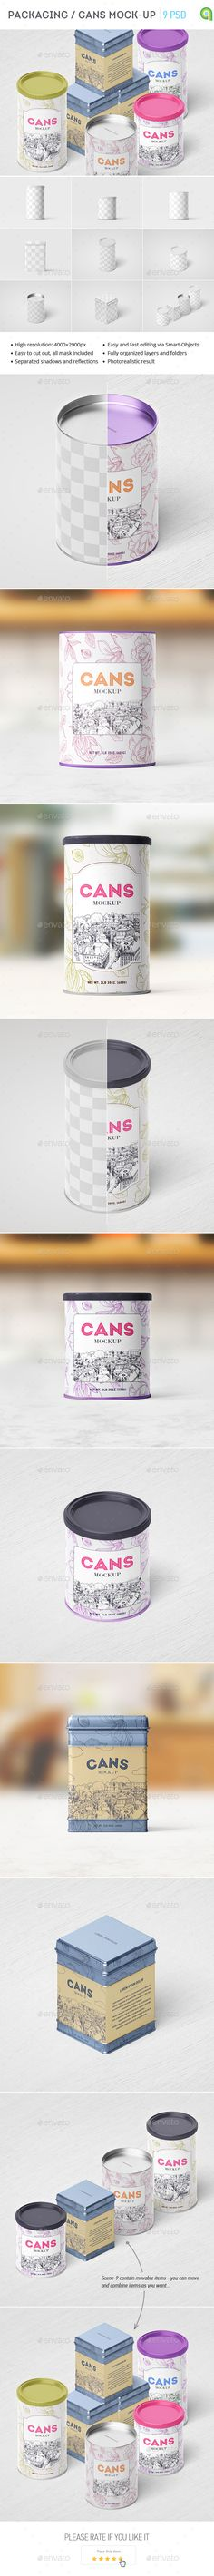 Packaging / Can Mockup — Photoshop PSD #conservation #food • Available here → https://graphicriver.net/item/packaging-can-mockup/15375171?ref=pxcr